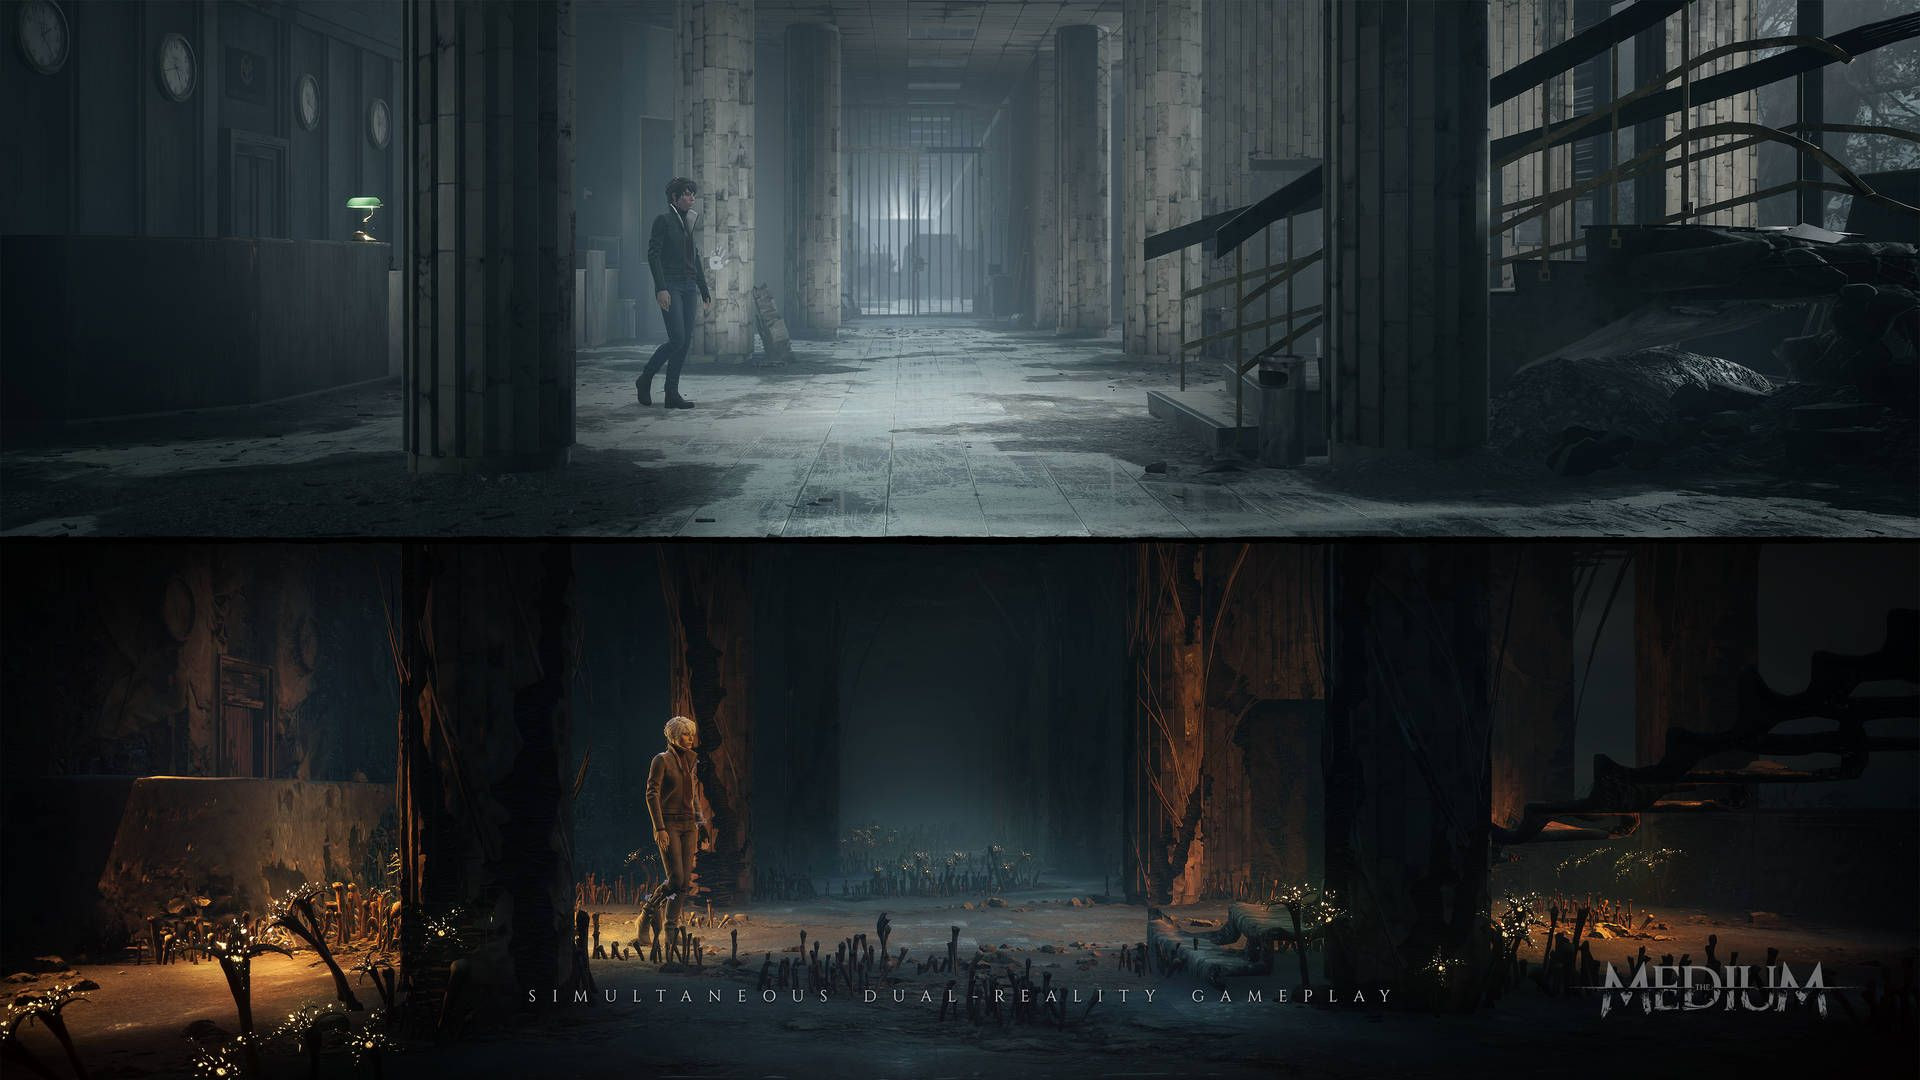 In-game split-screen visual from the game The Medium showing the main character Marianne in the lobby of the ababandoned hotel.